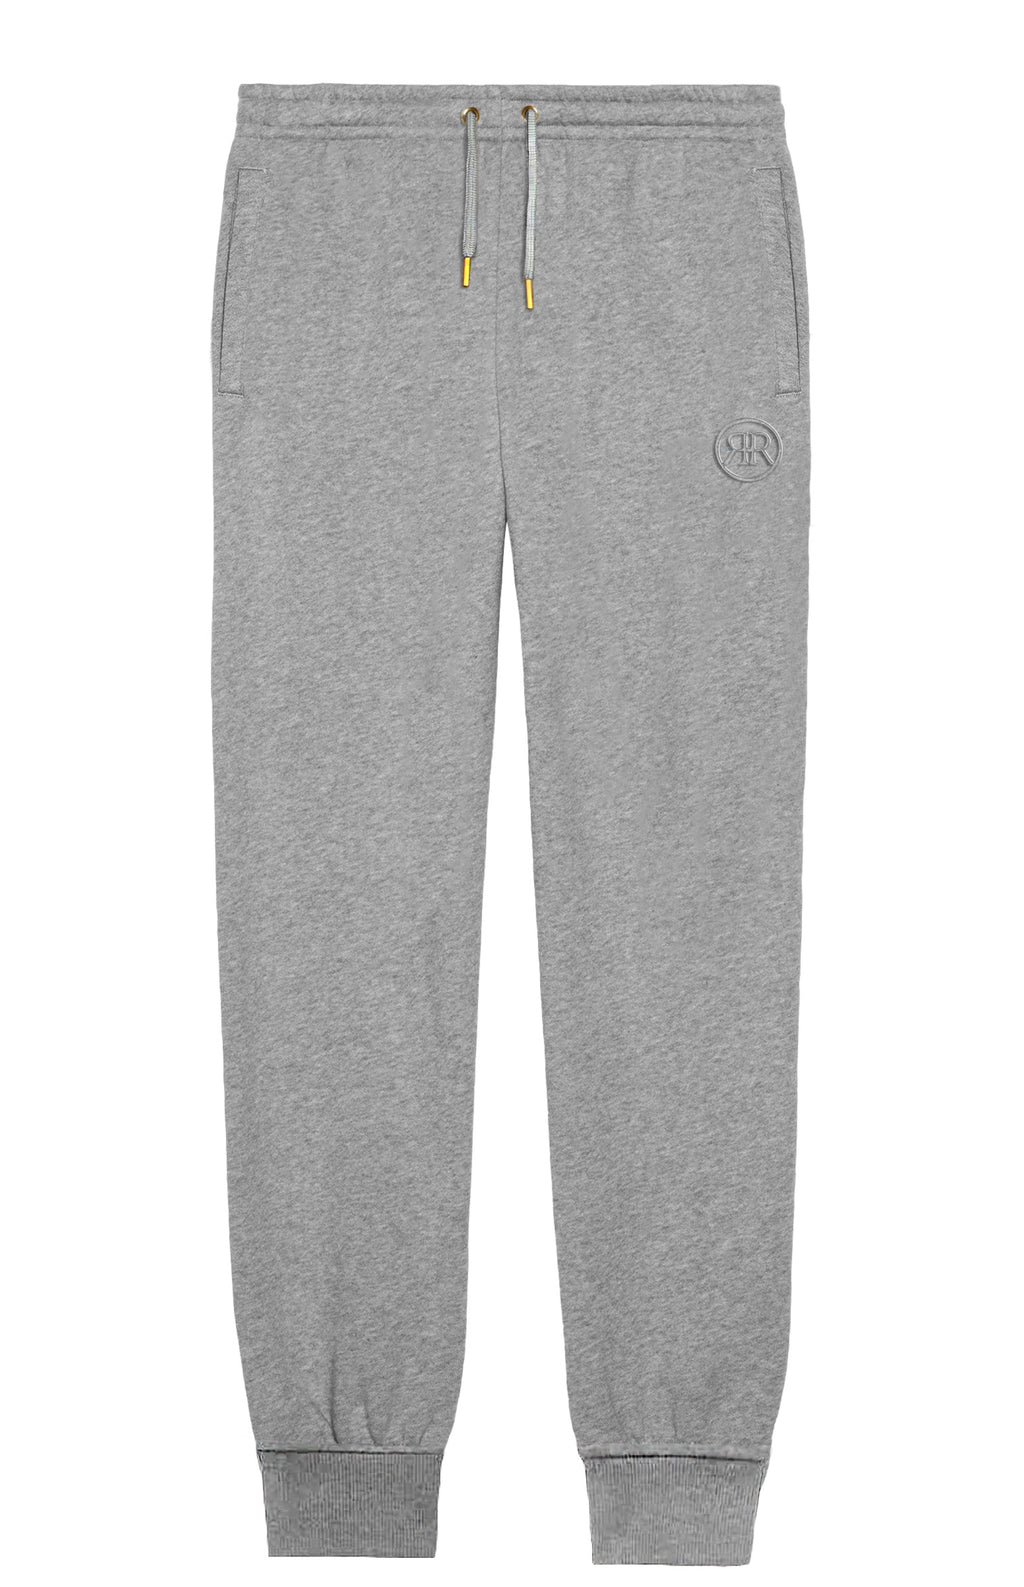 Gray Monogram Sweatpants